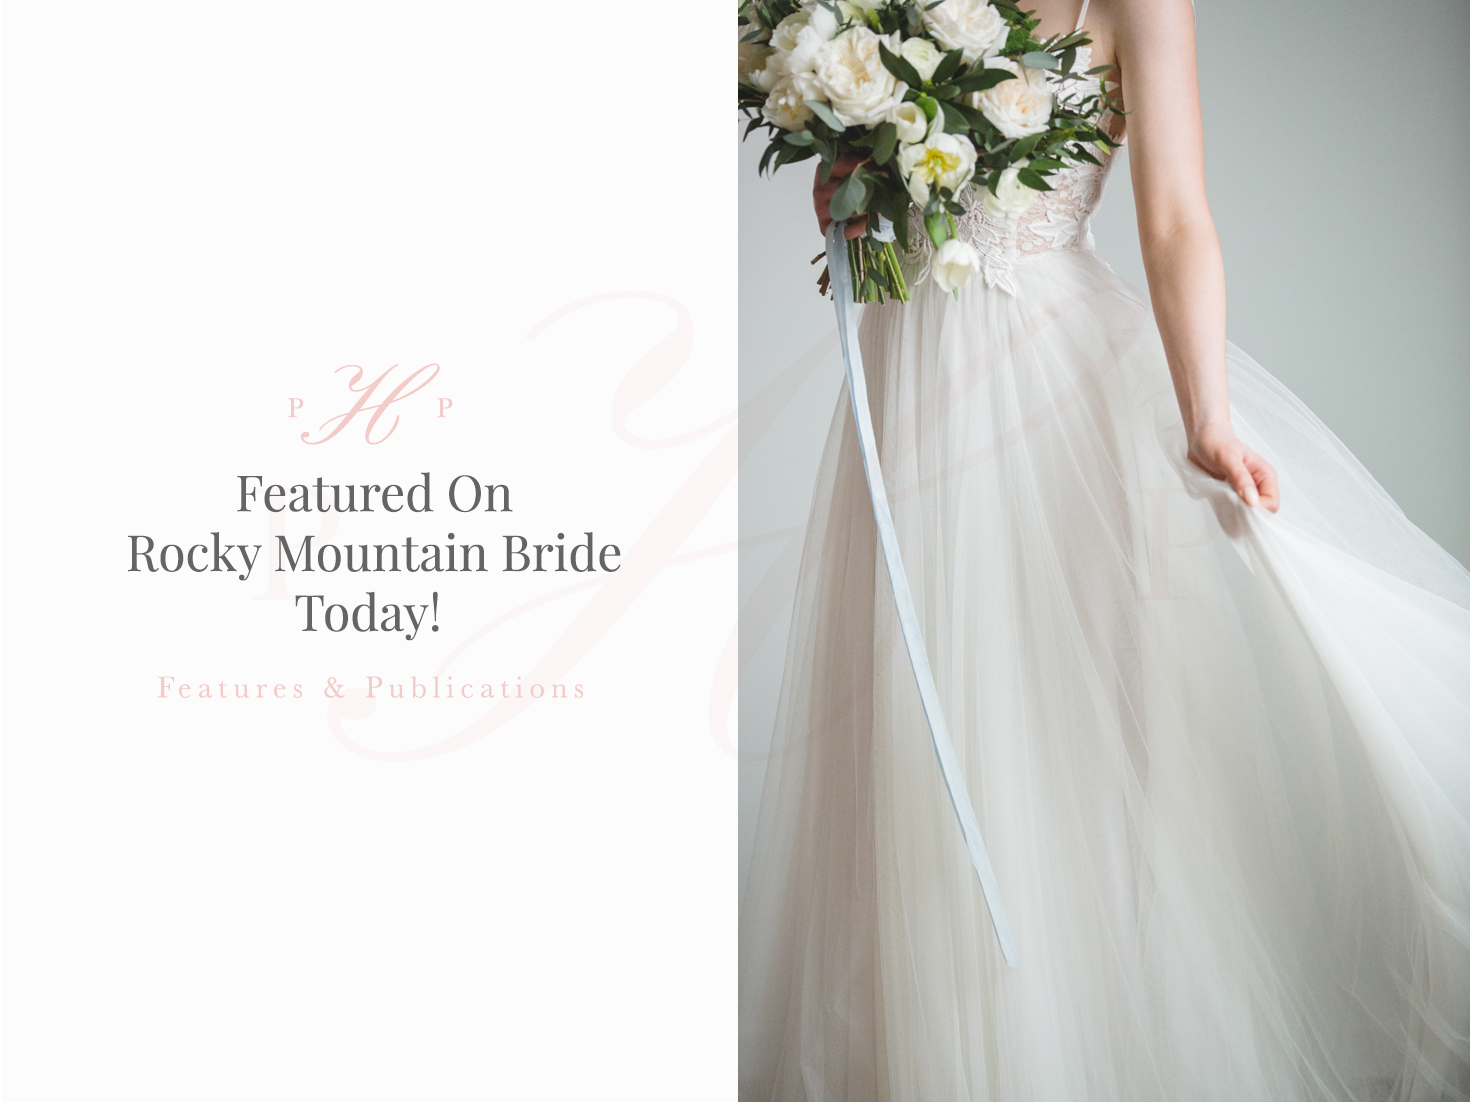 We're featured on Rocky Mountain Bride today!